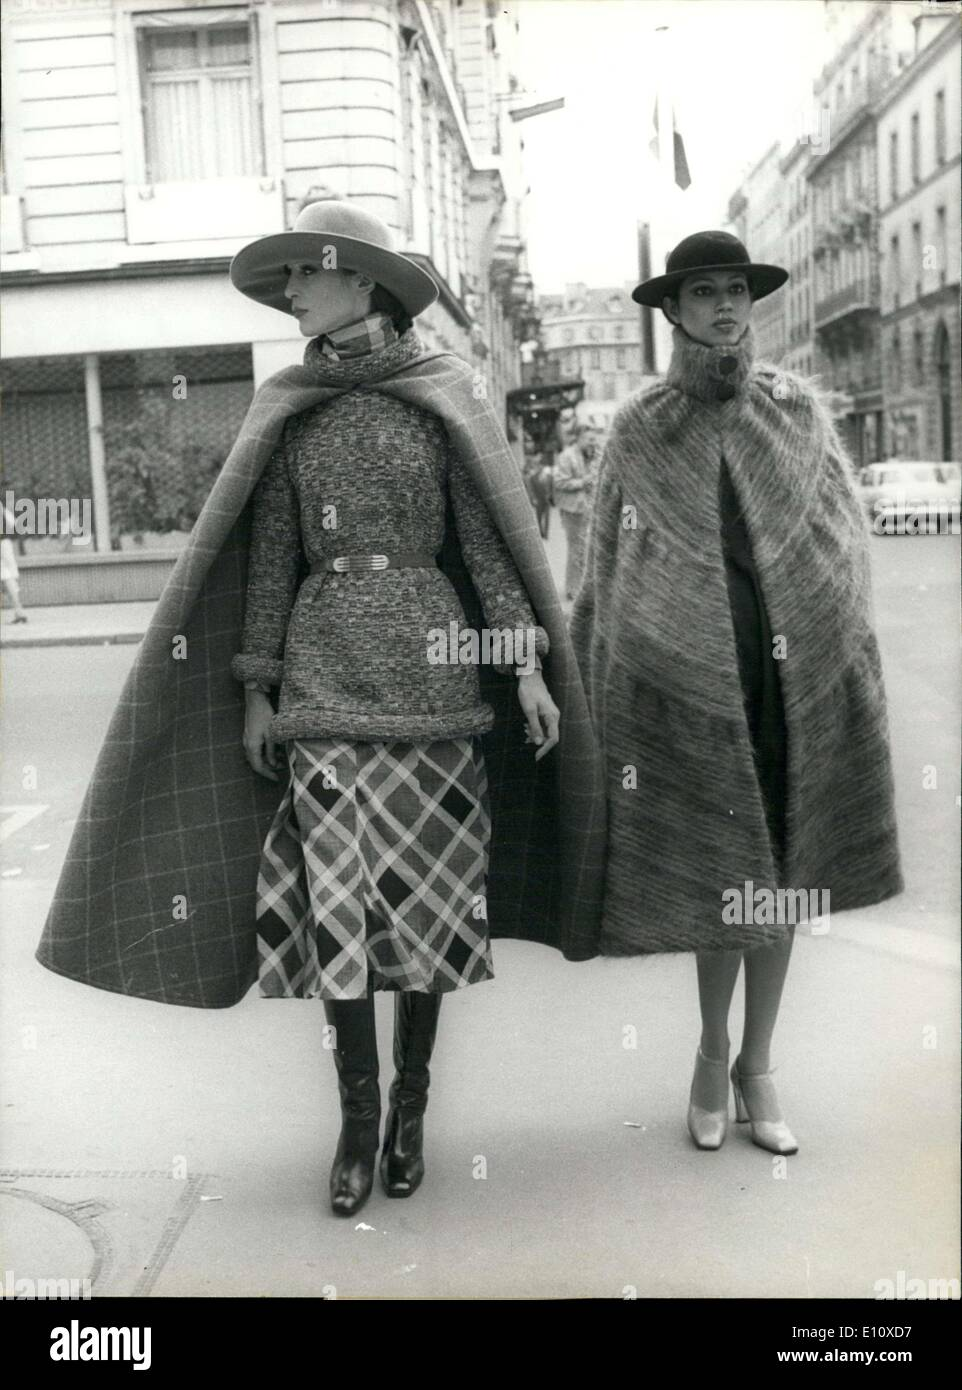 Jul. 25, 1974 - Pierre Cardin Presents Fall Winter Collection - Stock Image